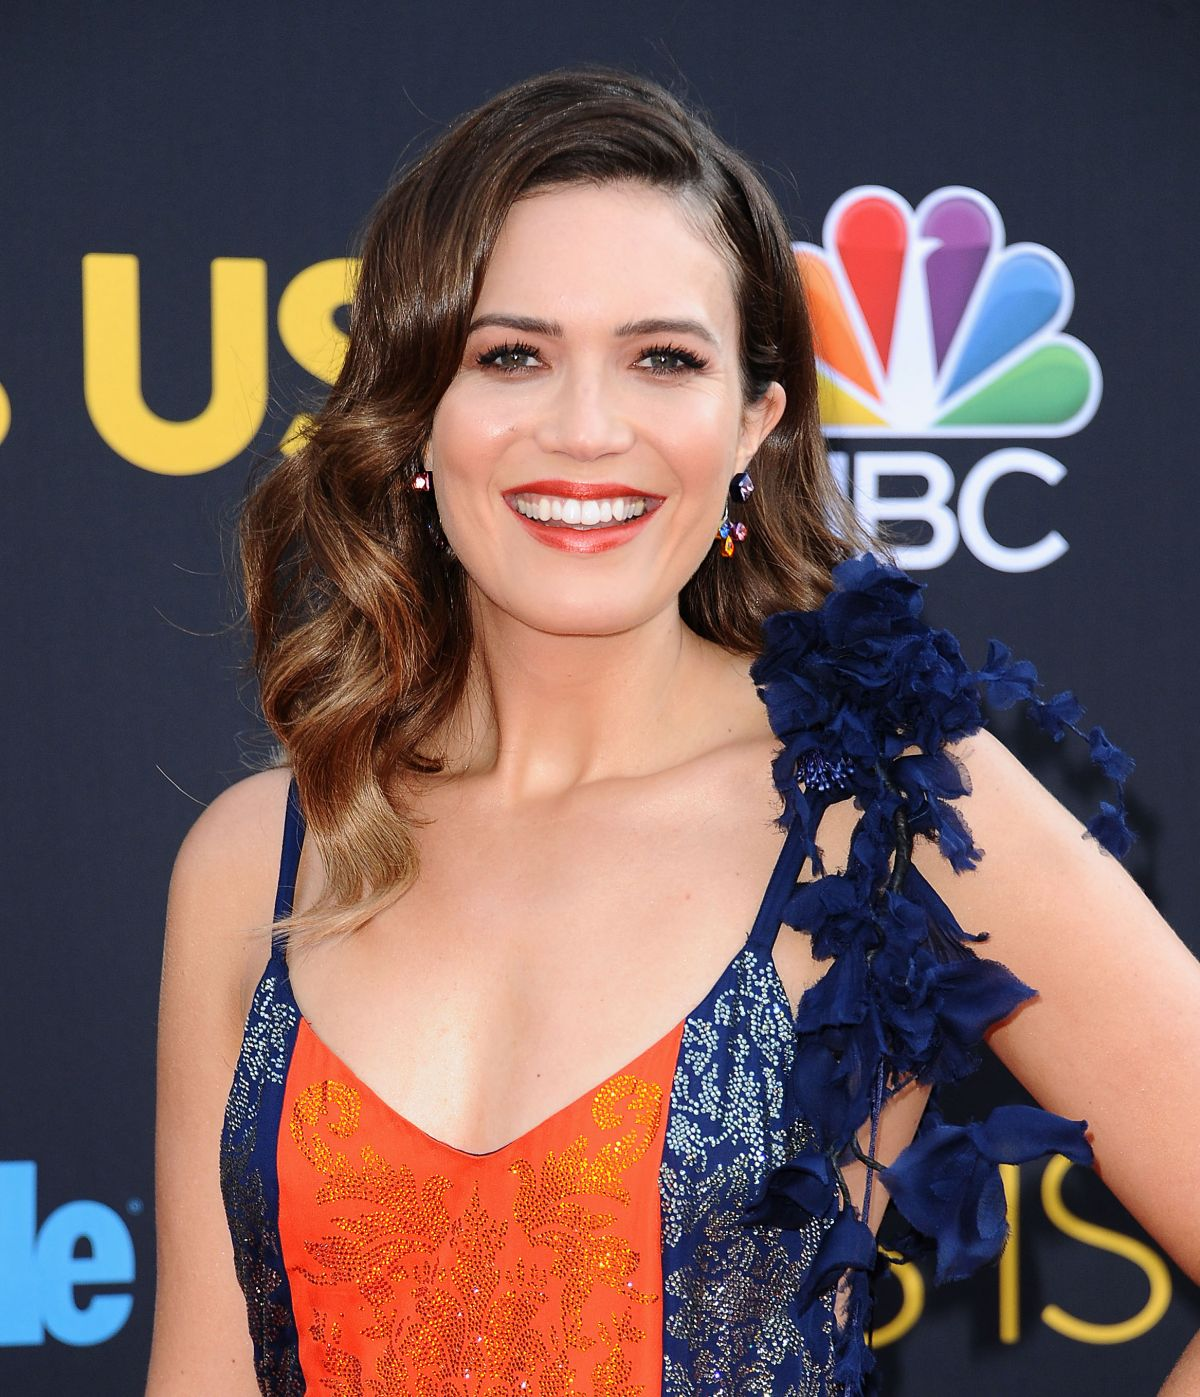 MANDY MOORE at This is Us Season 2 Premiere in Los Angeles